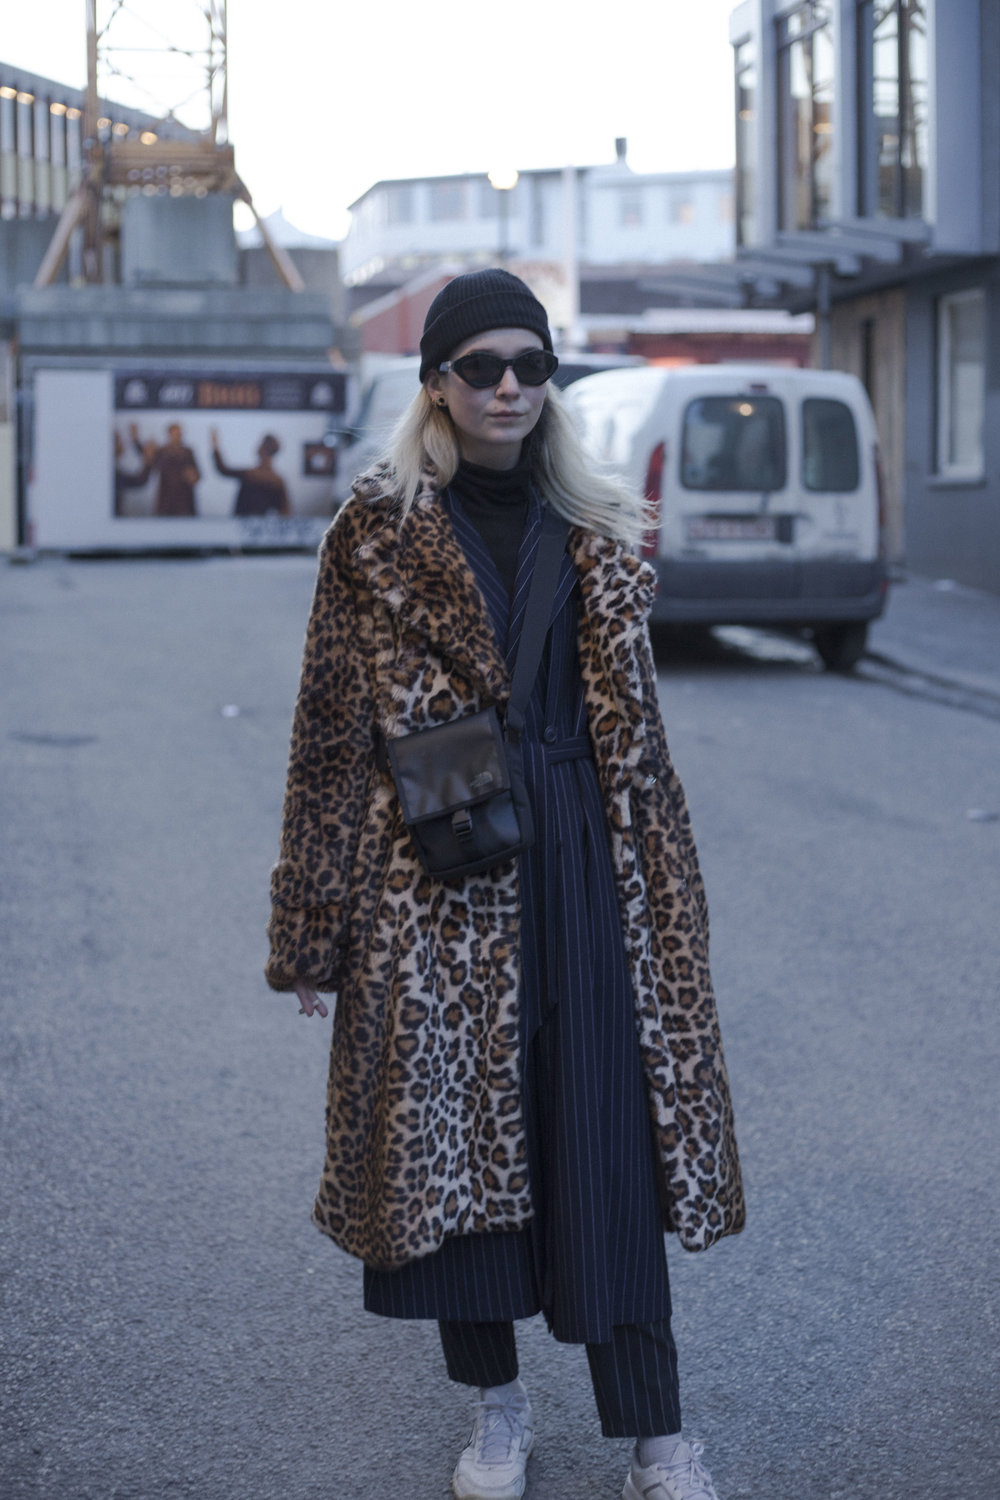 On the streets of Reykjavik. Stylish layering with 2ndday jacket and northface bag